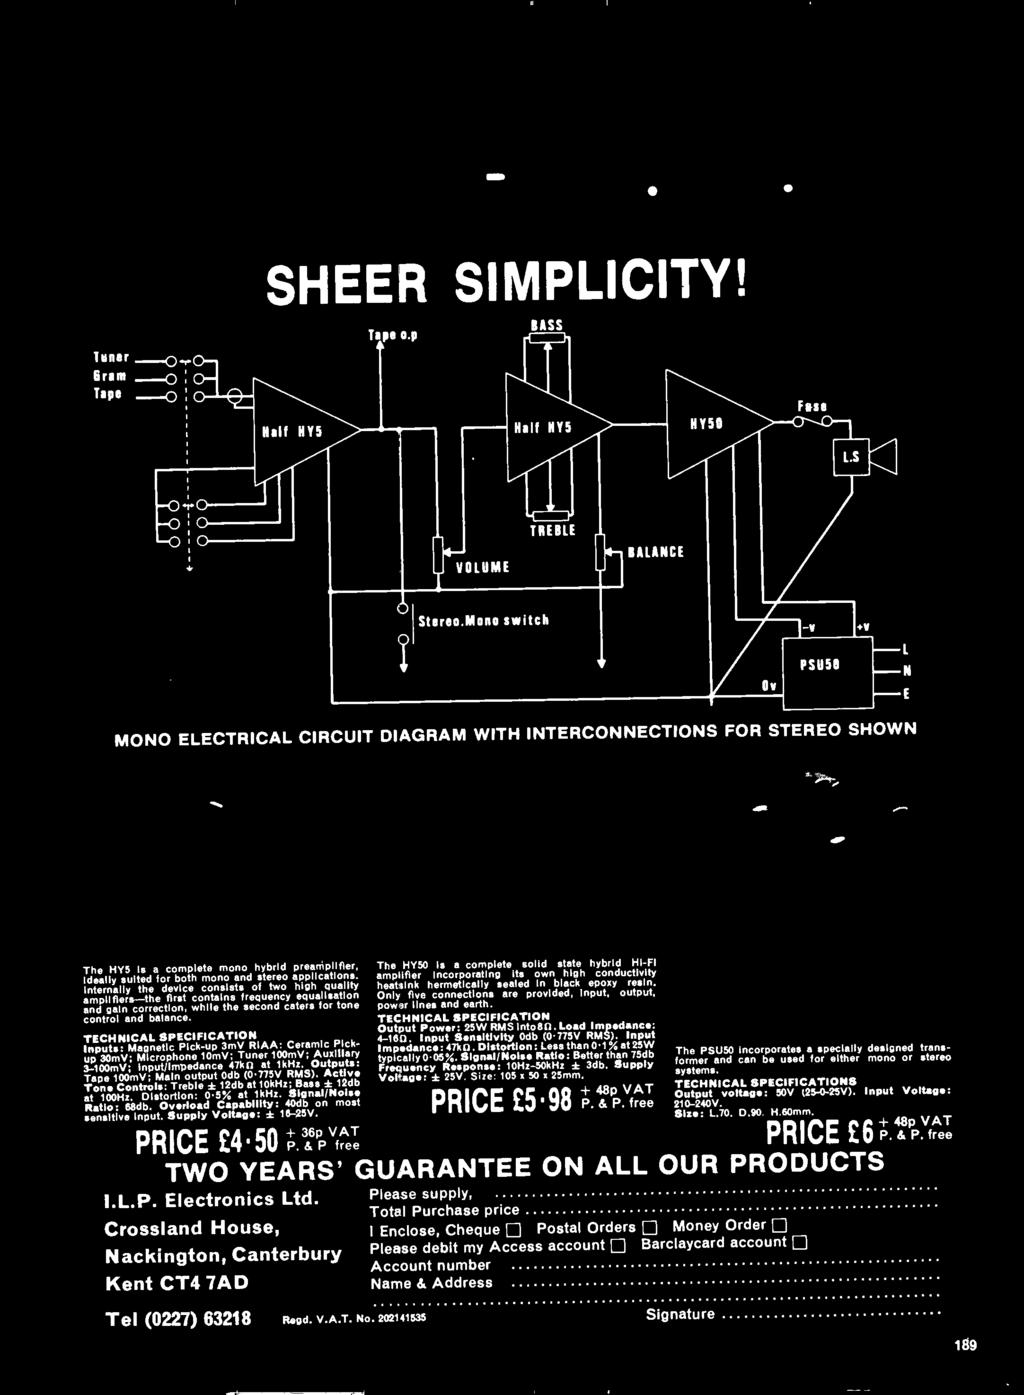 July P Updating Your Present Texan Amplifier Tele Tennis Add On Pin 15 Amp Wiring Diagram E39 Philips Radio Only Five Connections Are Provided Input Output Power Lines And Earth Technical